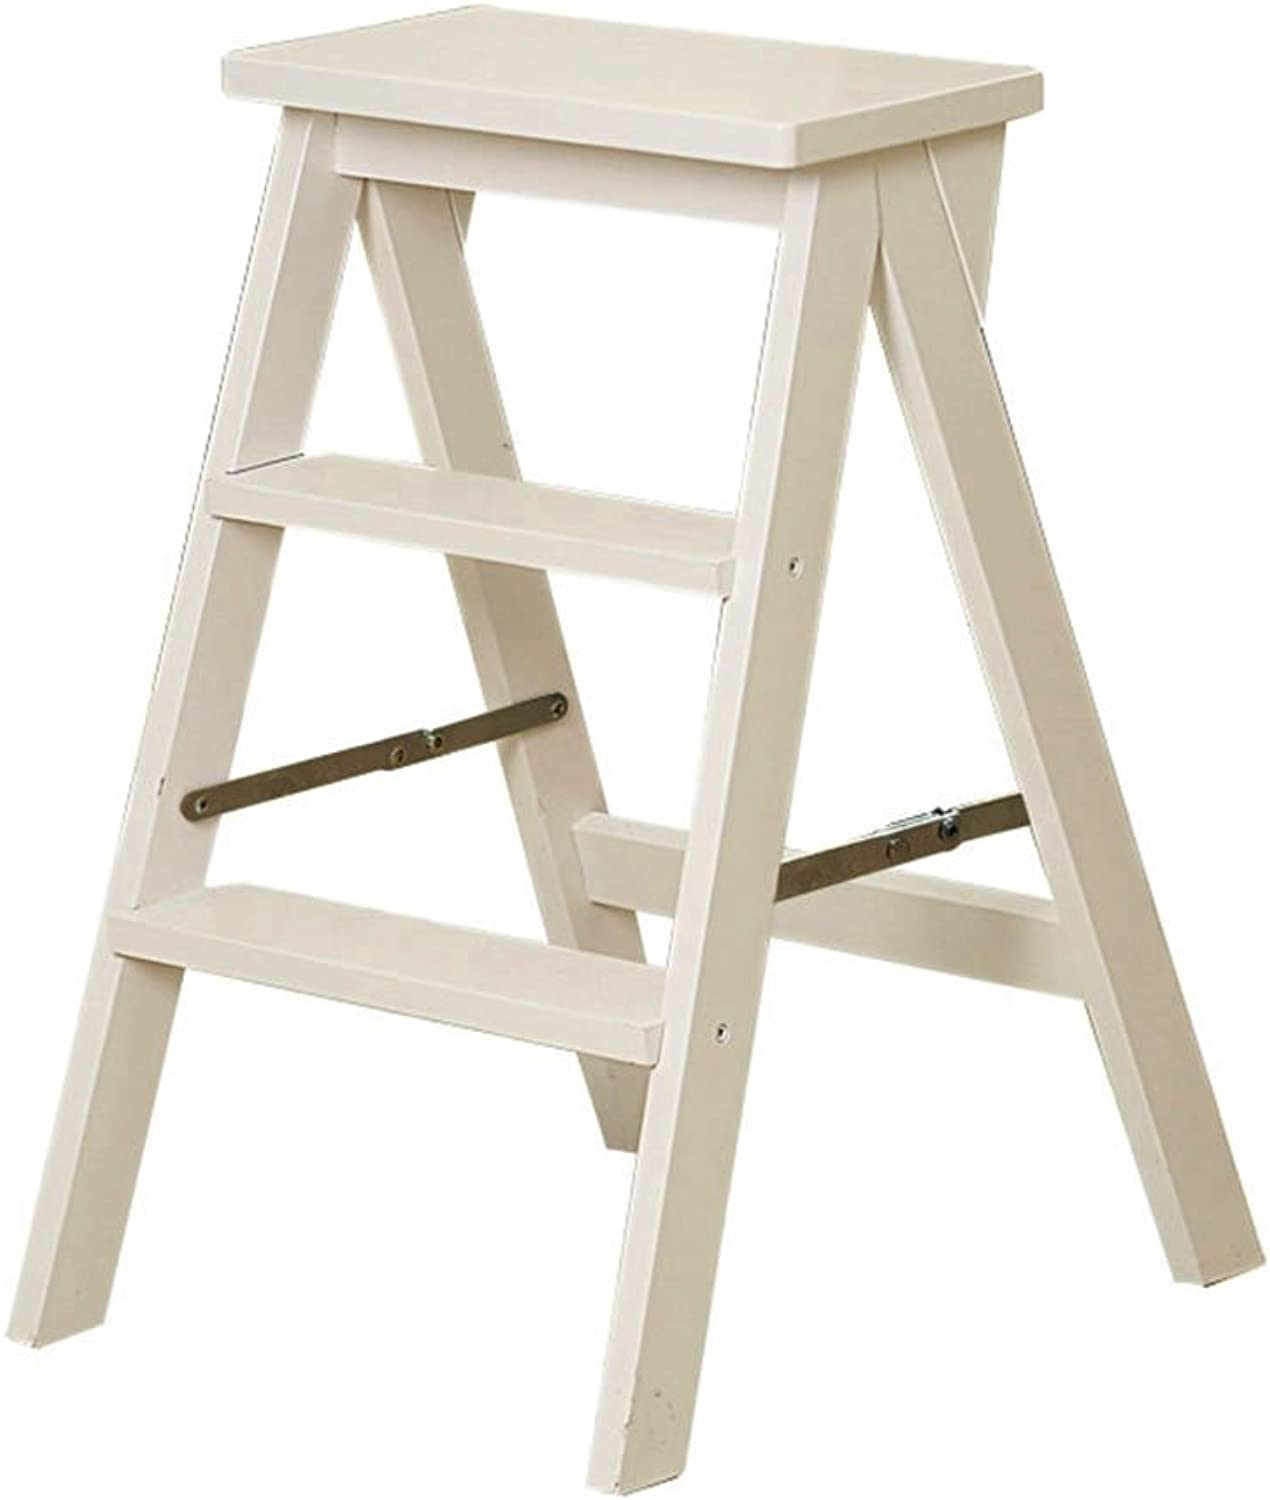 Stool and Kitchen Chair Creative Staircase Stool Multifunctional Folding Ladder Solid Wood Household Ladder Stool Indoor Mobile Climbing Ladder Home Multi-Function Rack